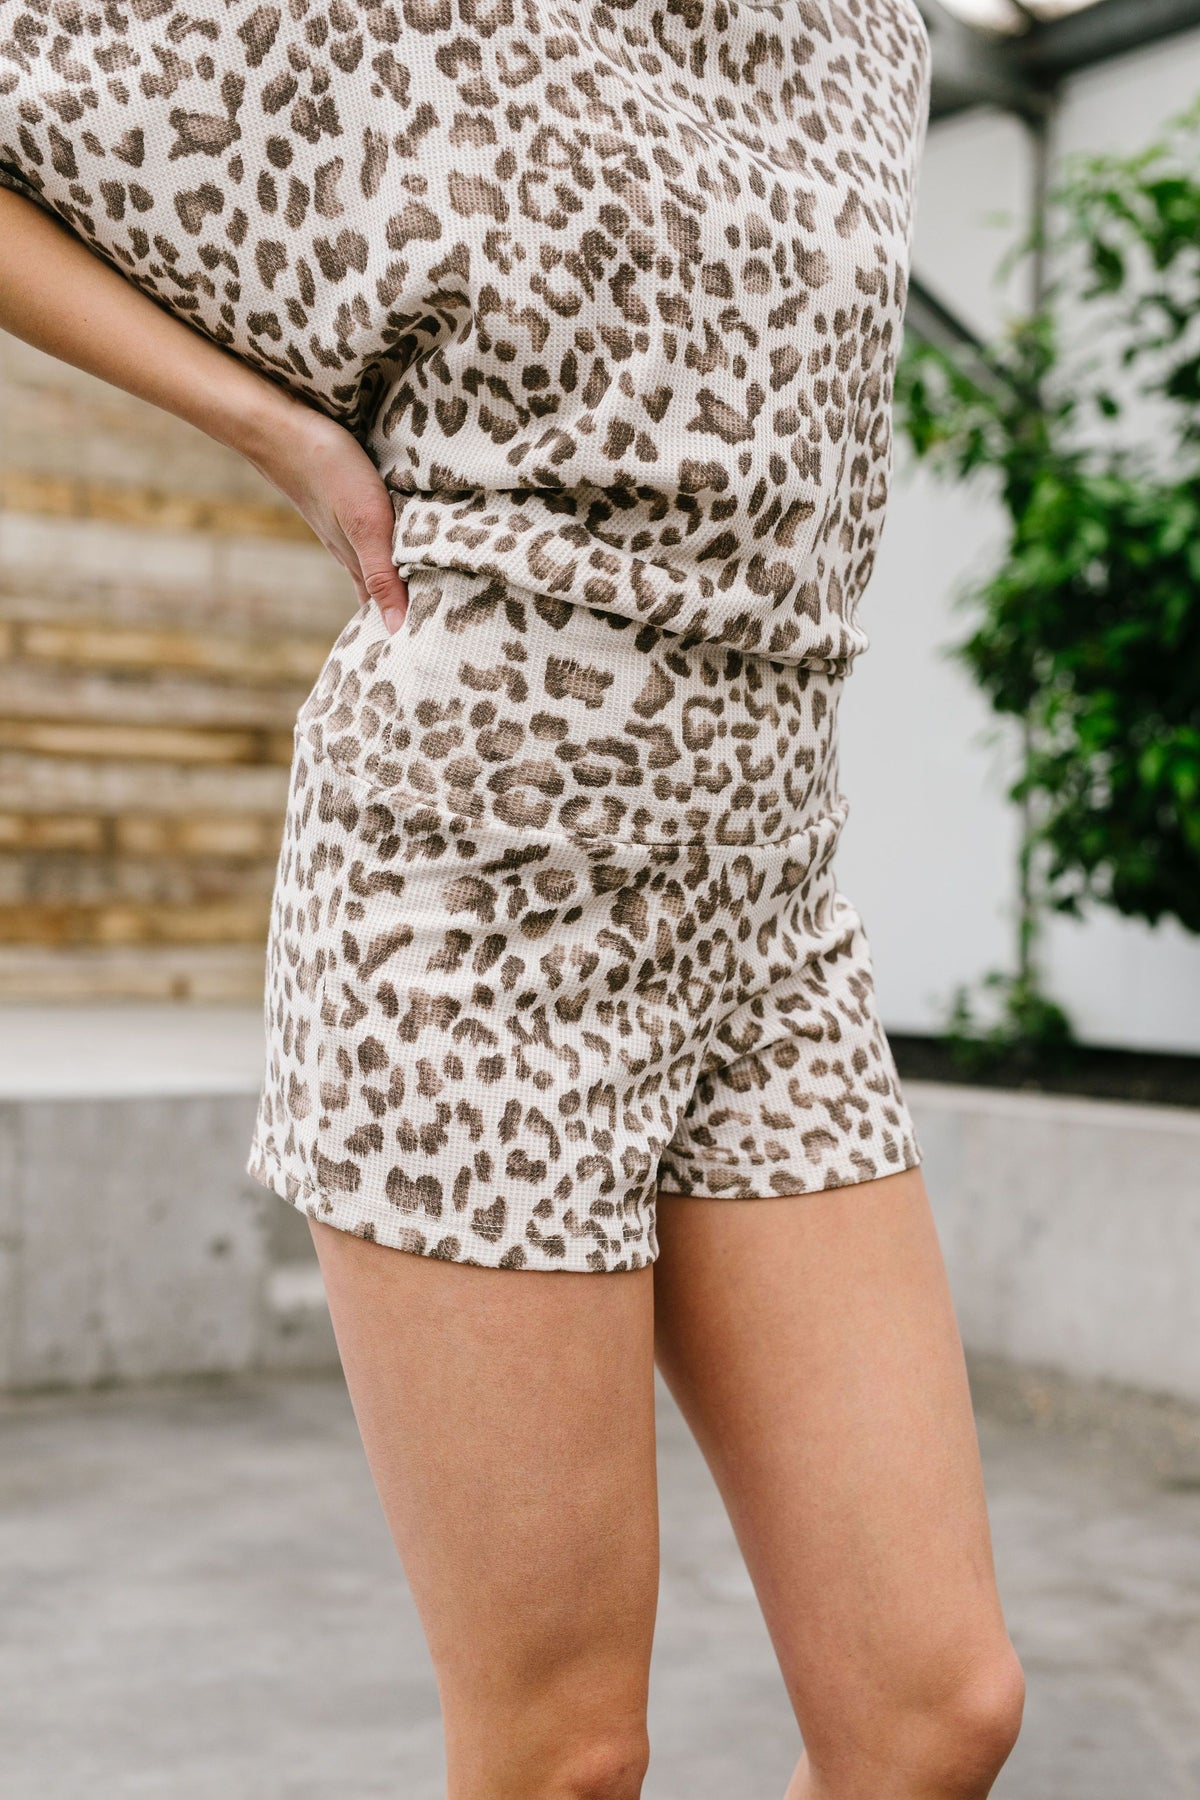 Leopard Print Stretchy Shorts